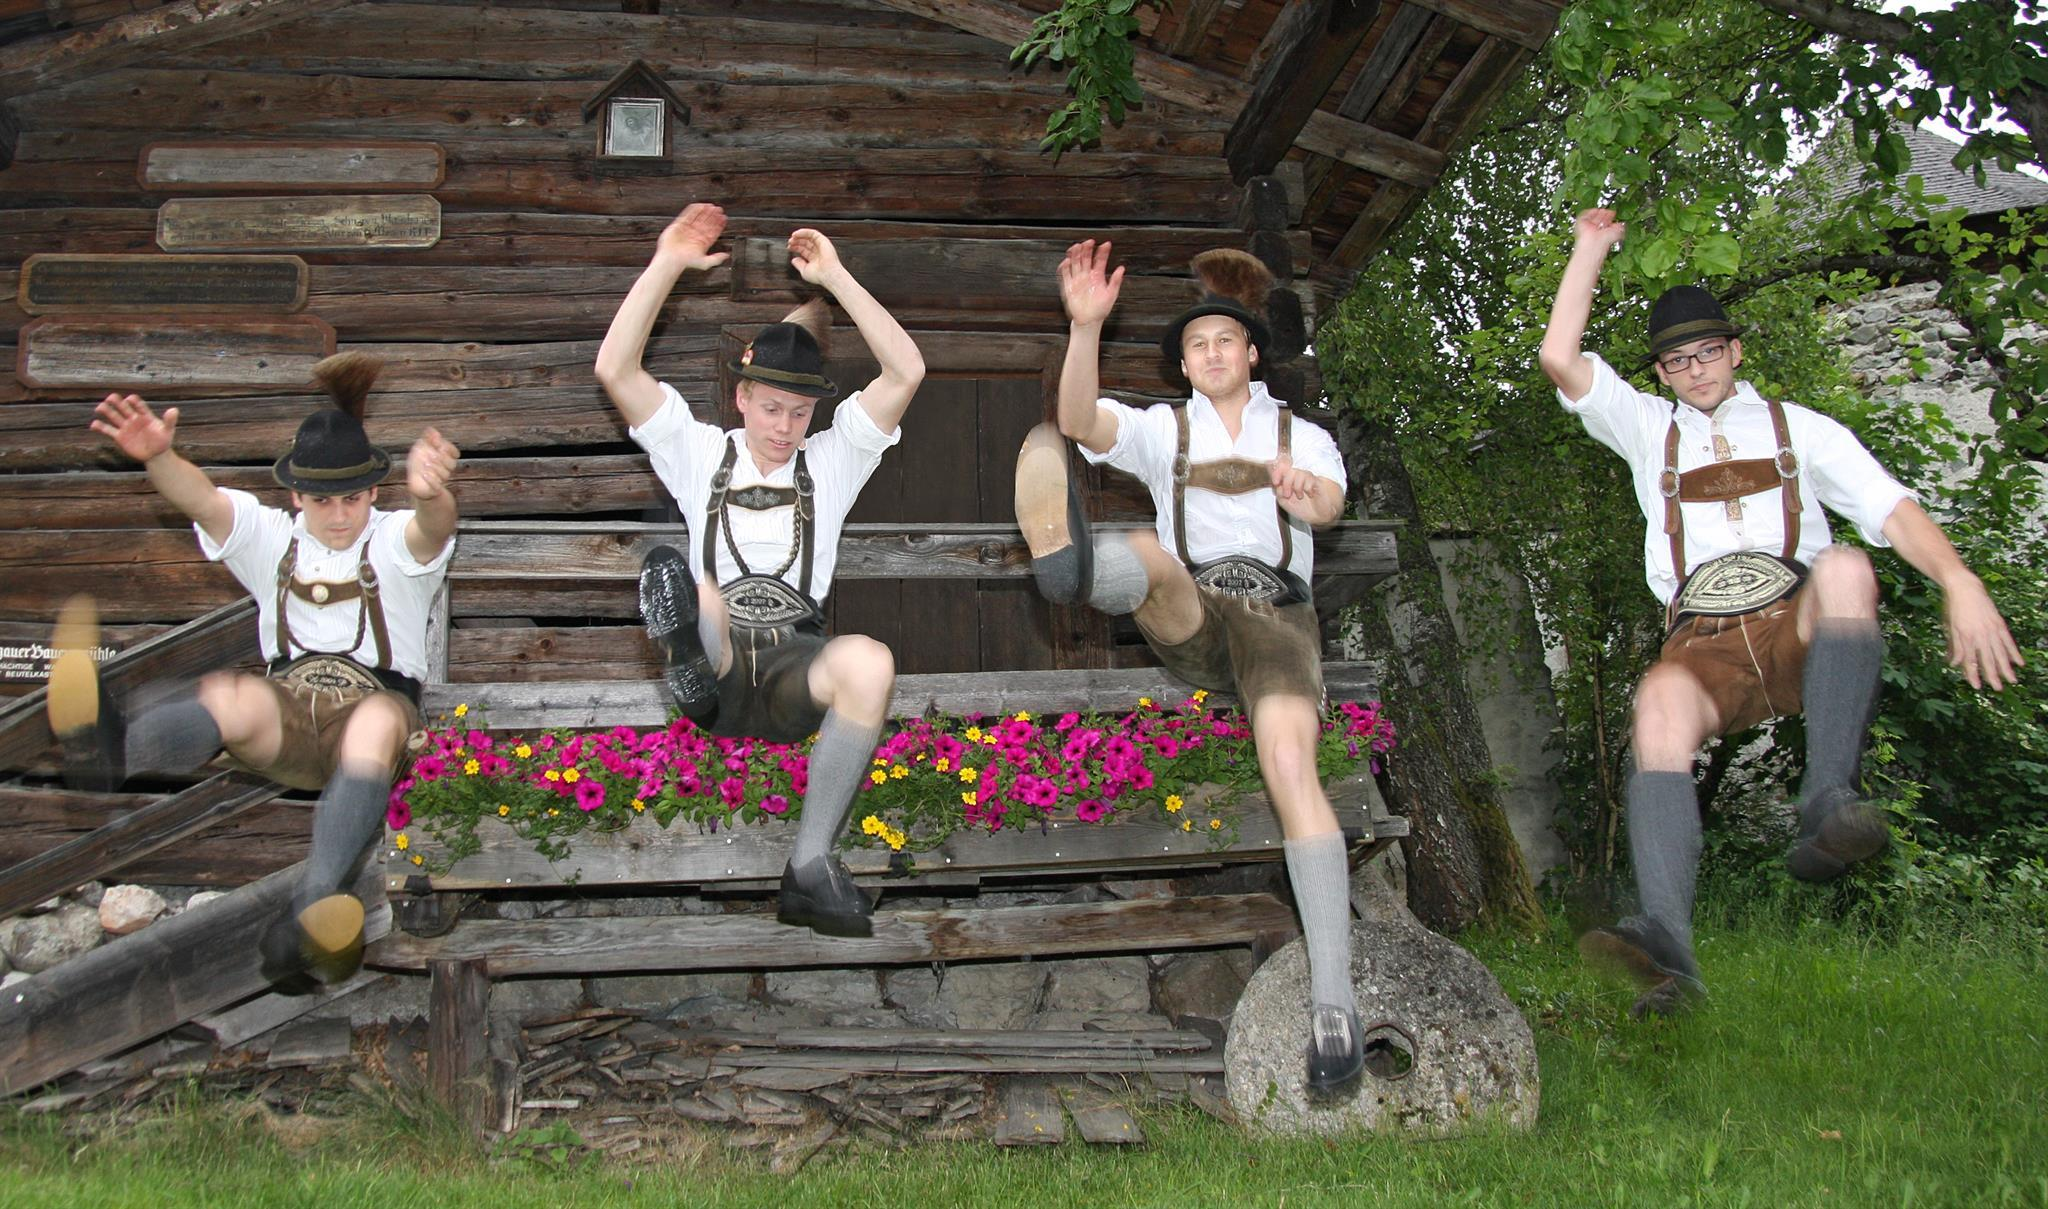 Traditional evening at the castle Kaprun - 21/07/2020, from 8:00 PM